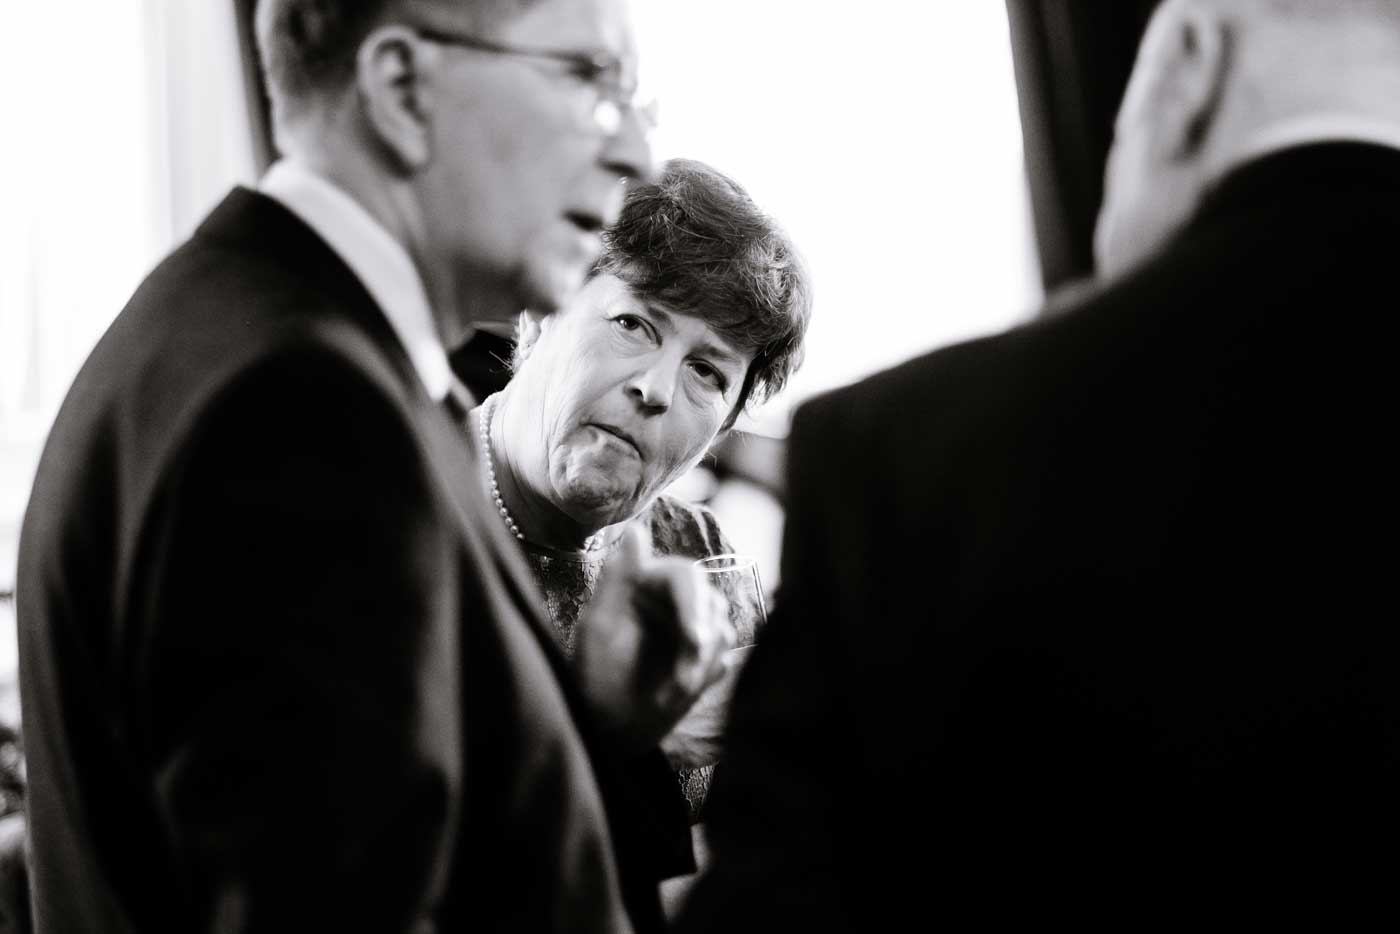 Woman listening carefully as a man speaks at Stanbrook Abbey